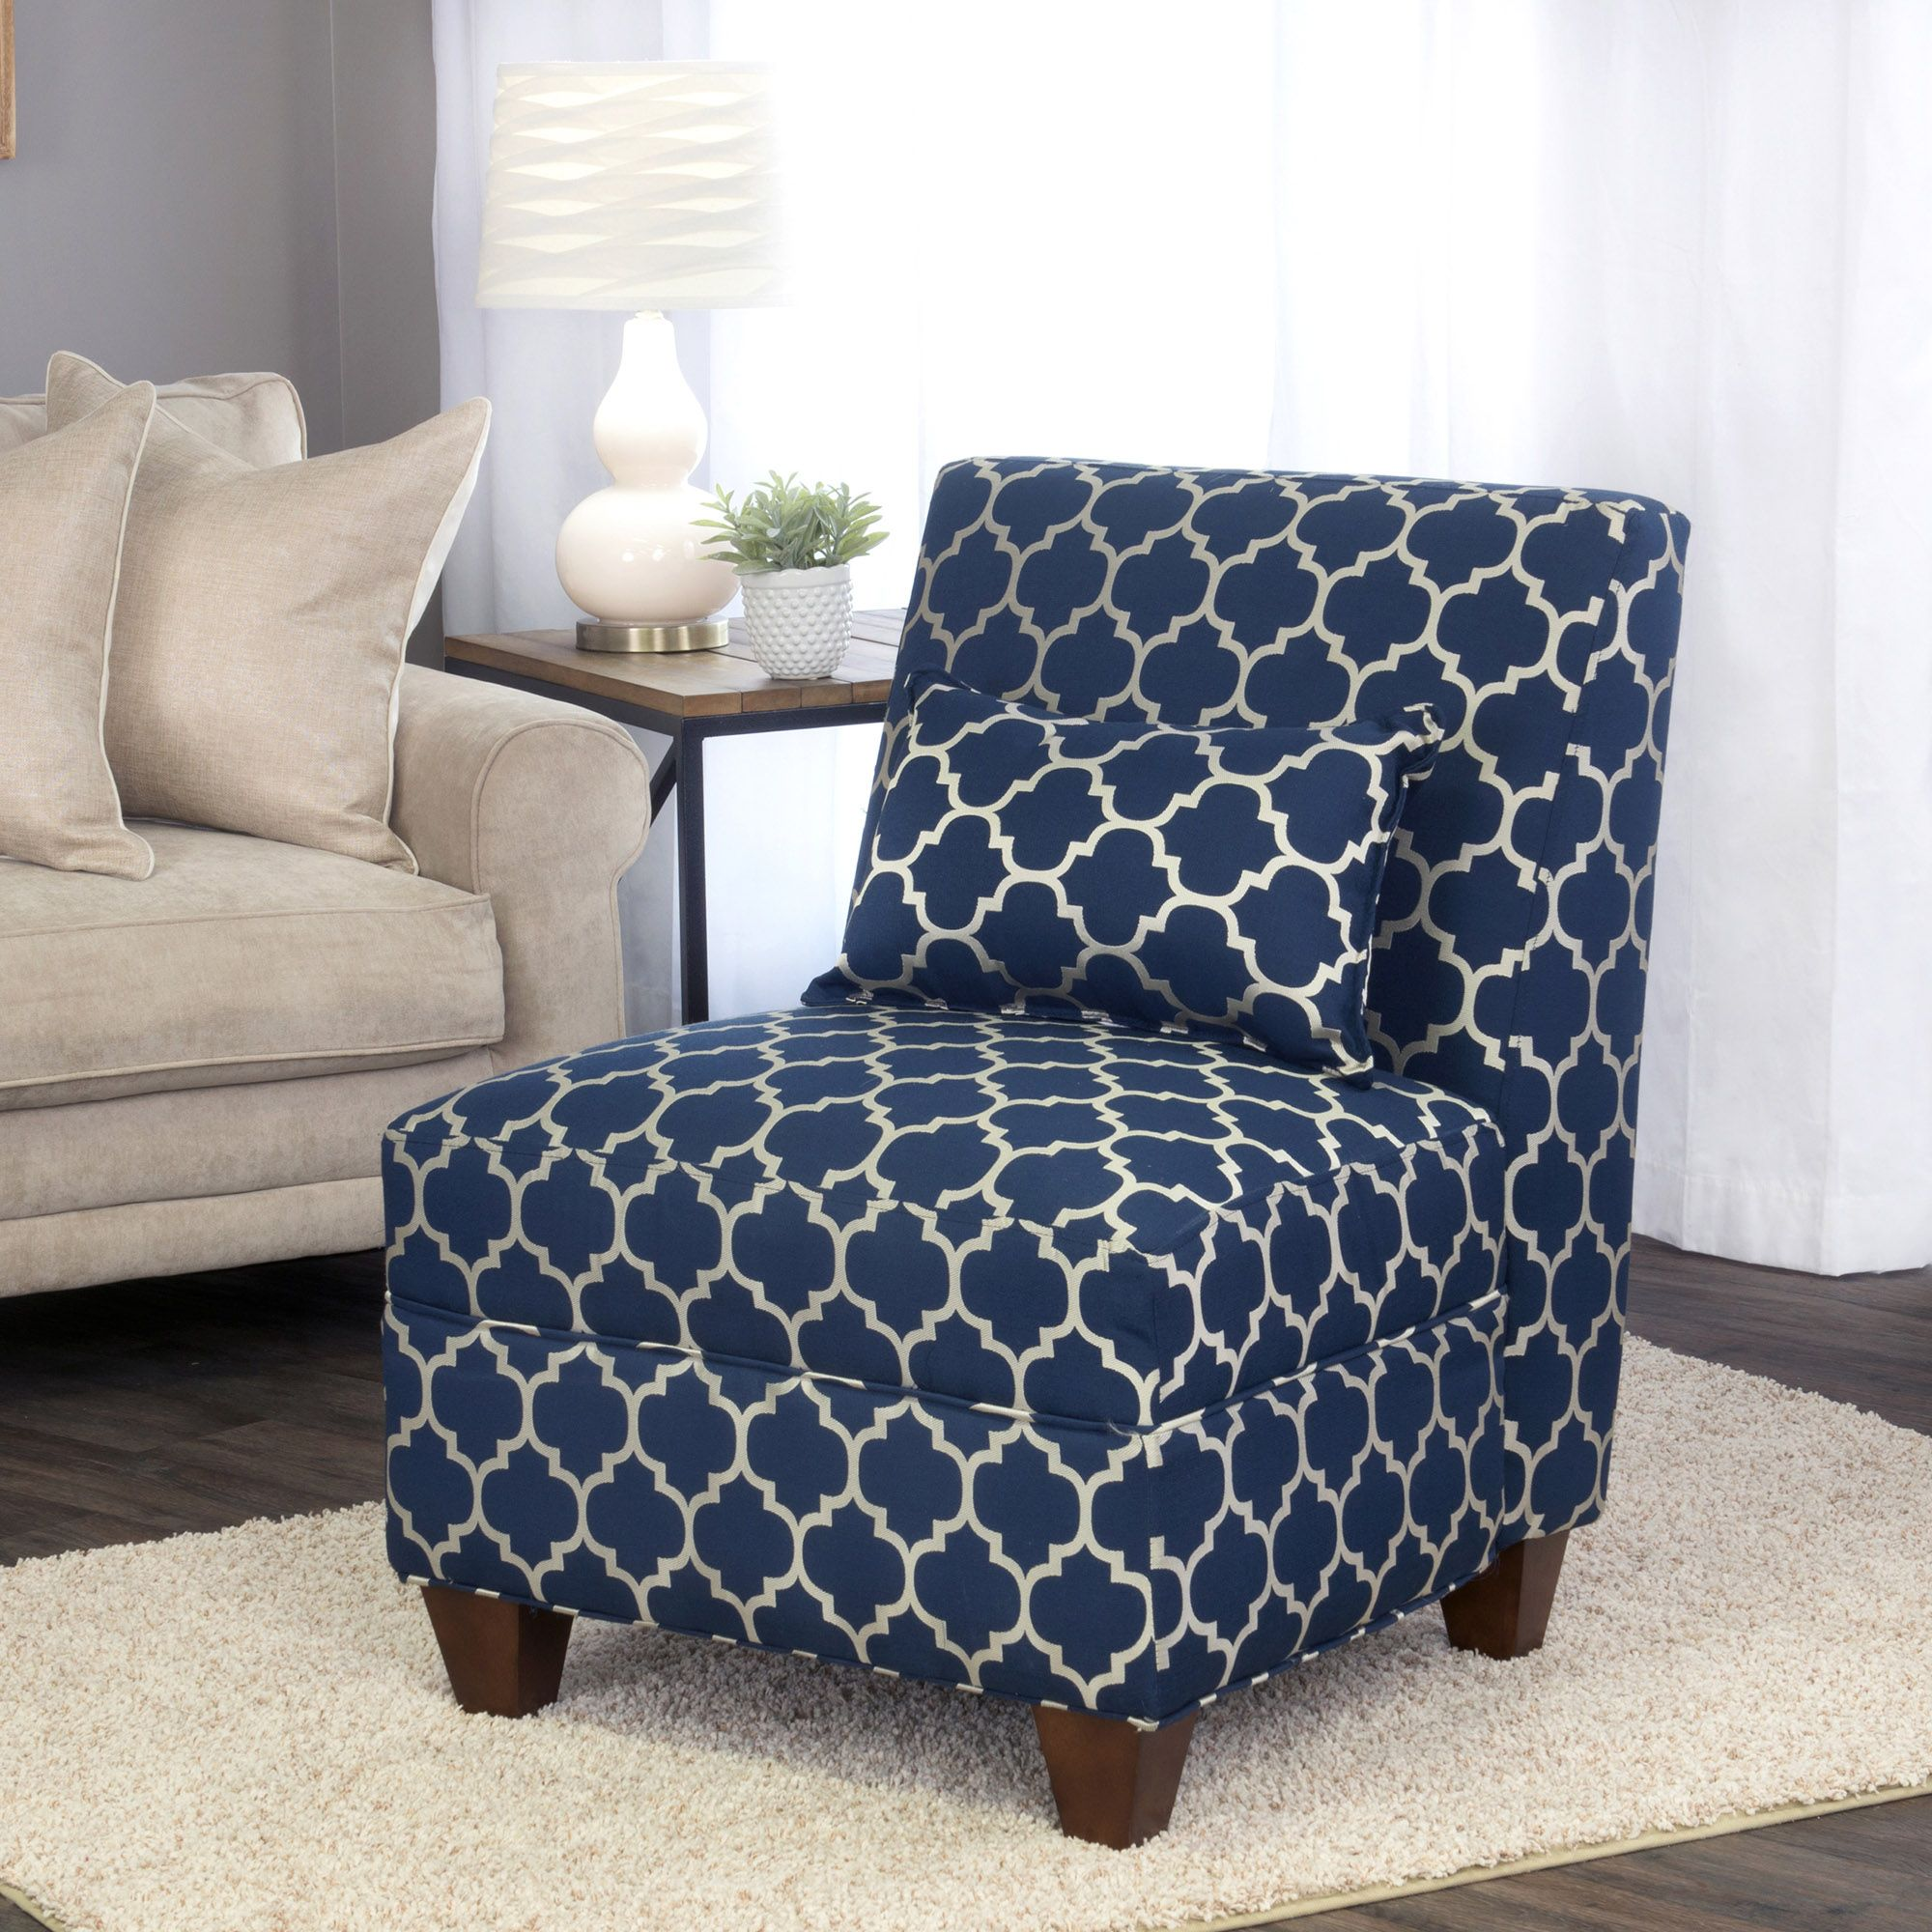 Charlotte accent chair navy homepop